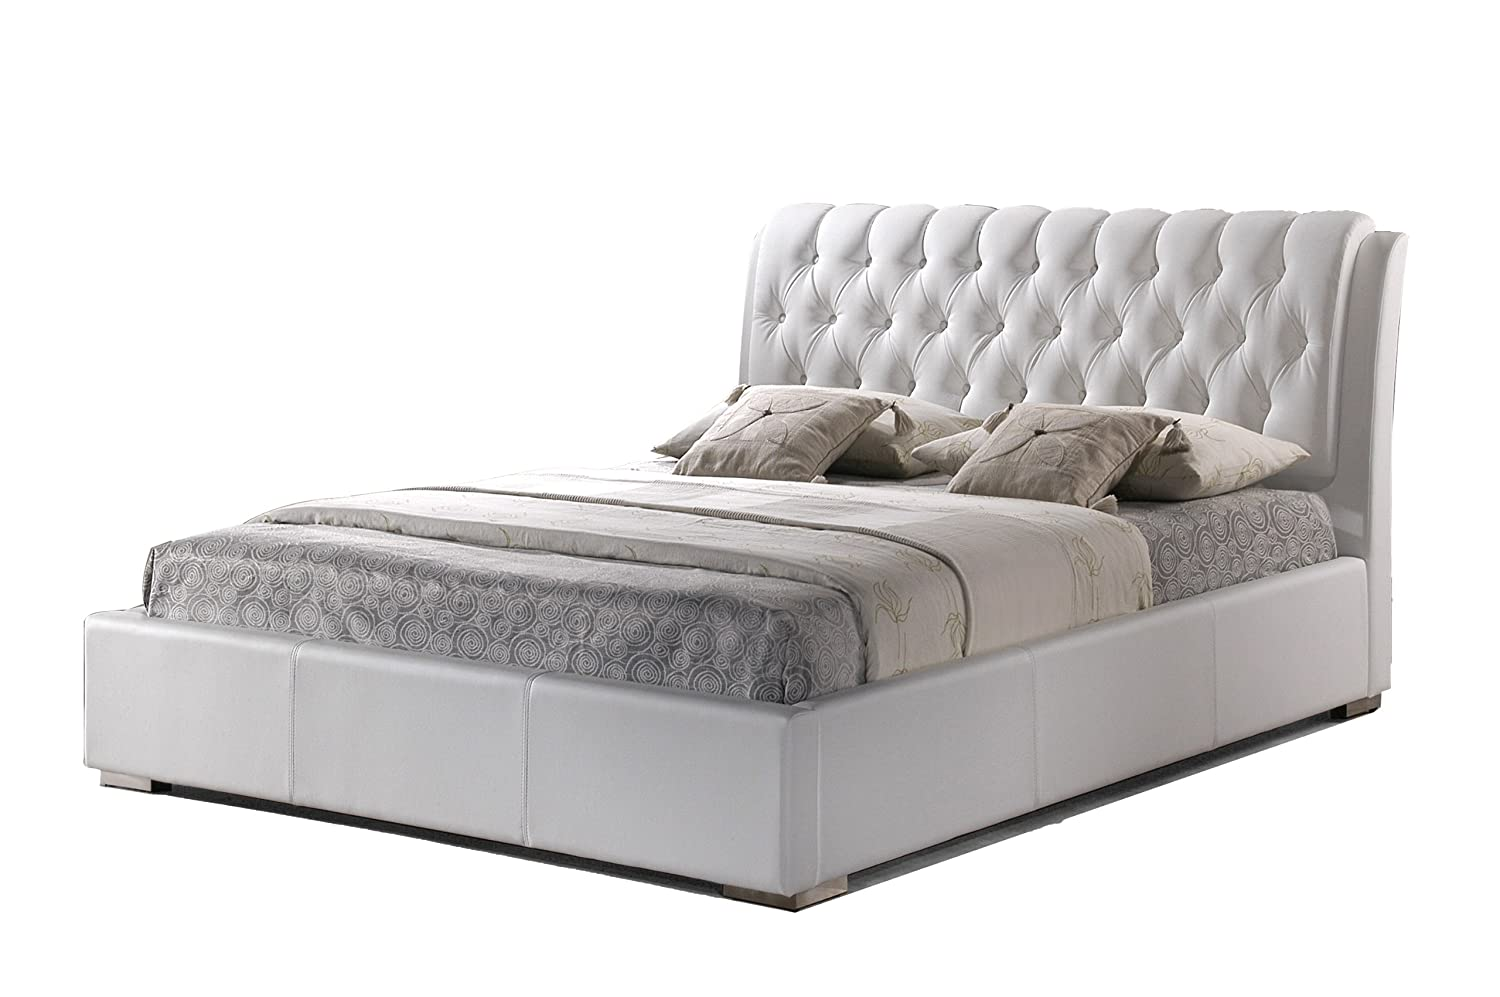 Amazon.com: Baxton Studio Bianca White Modern Bed with Tufted ...